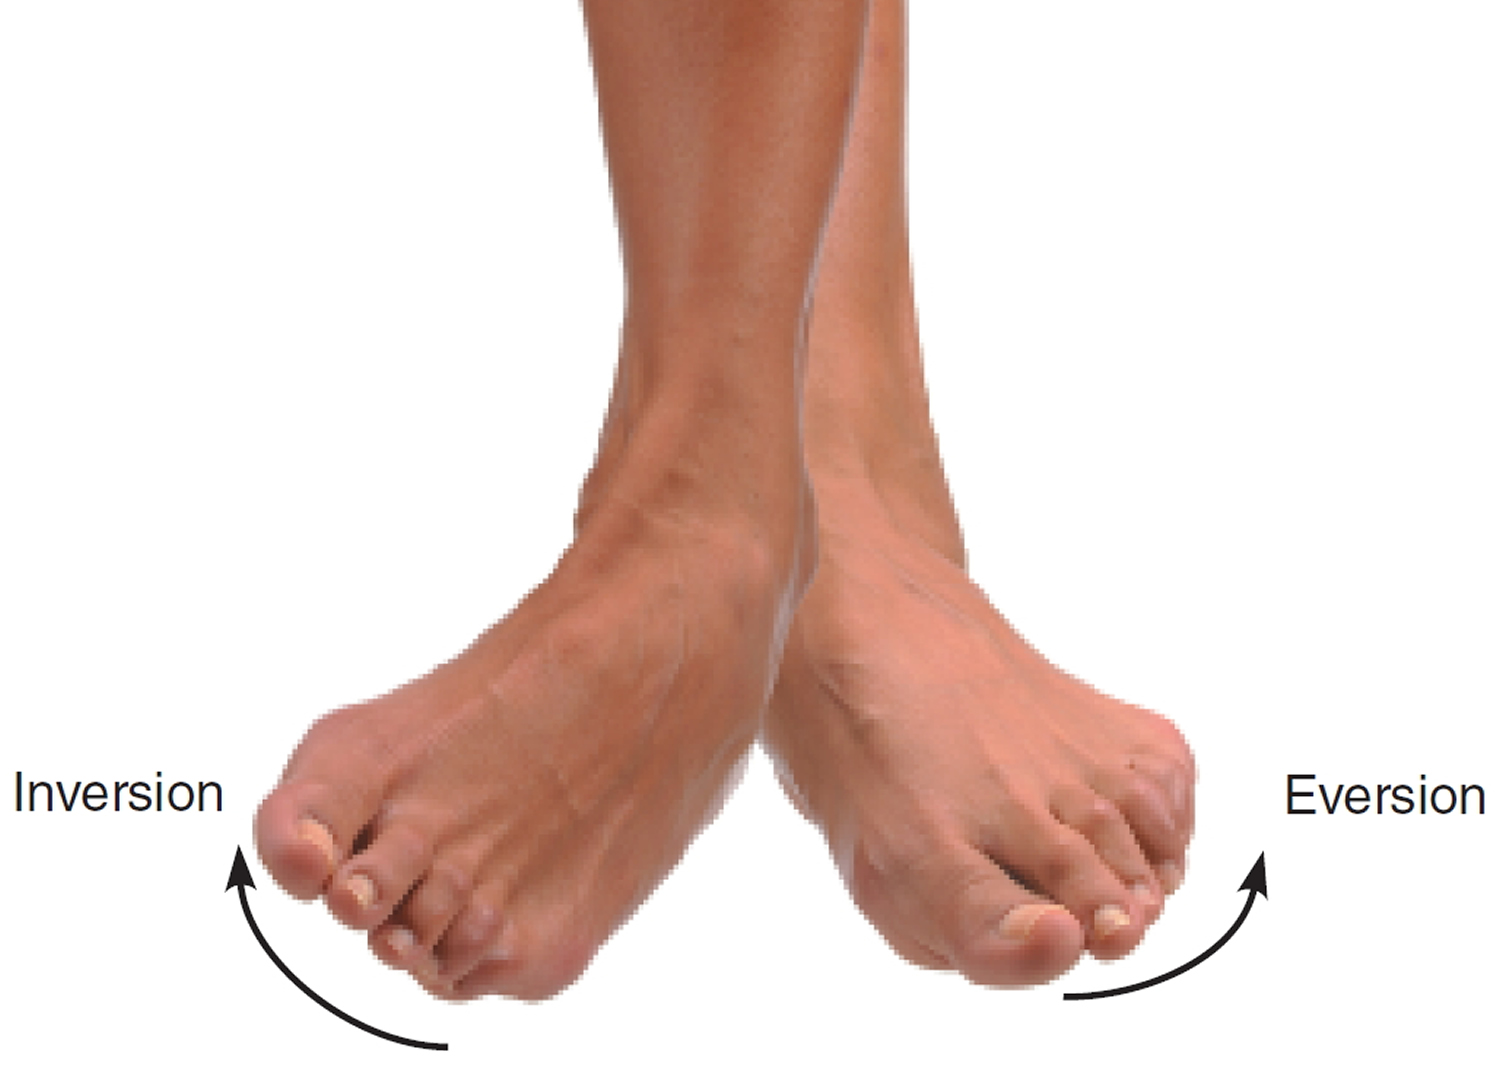 inversion and eversion of the foot